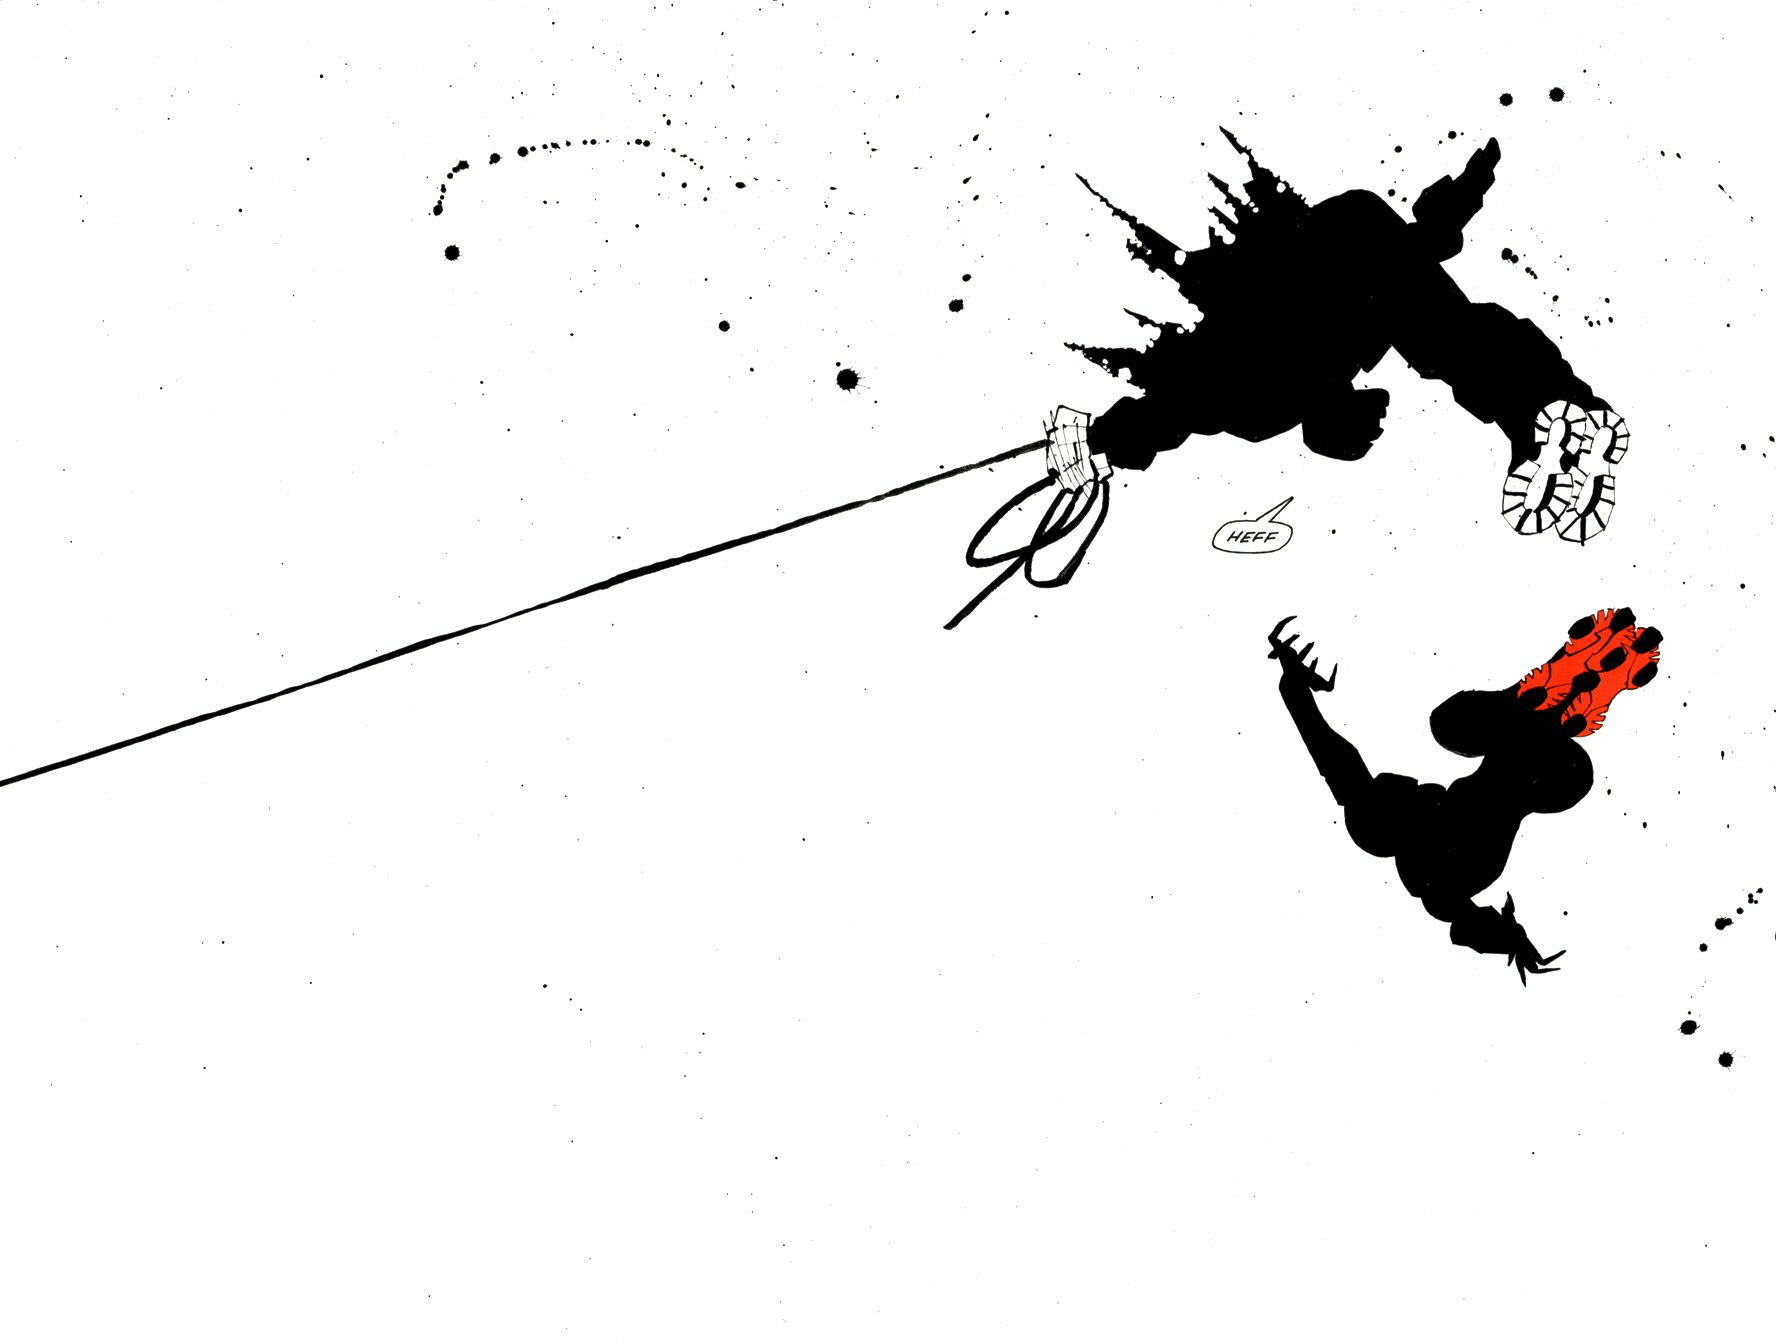 Read online Frank Miller's Holy Terror comic -  Issue # TPB - 13